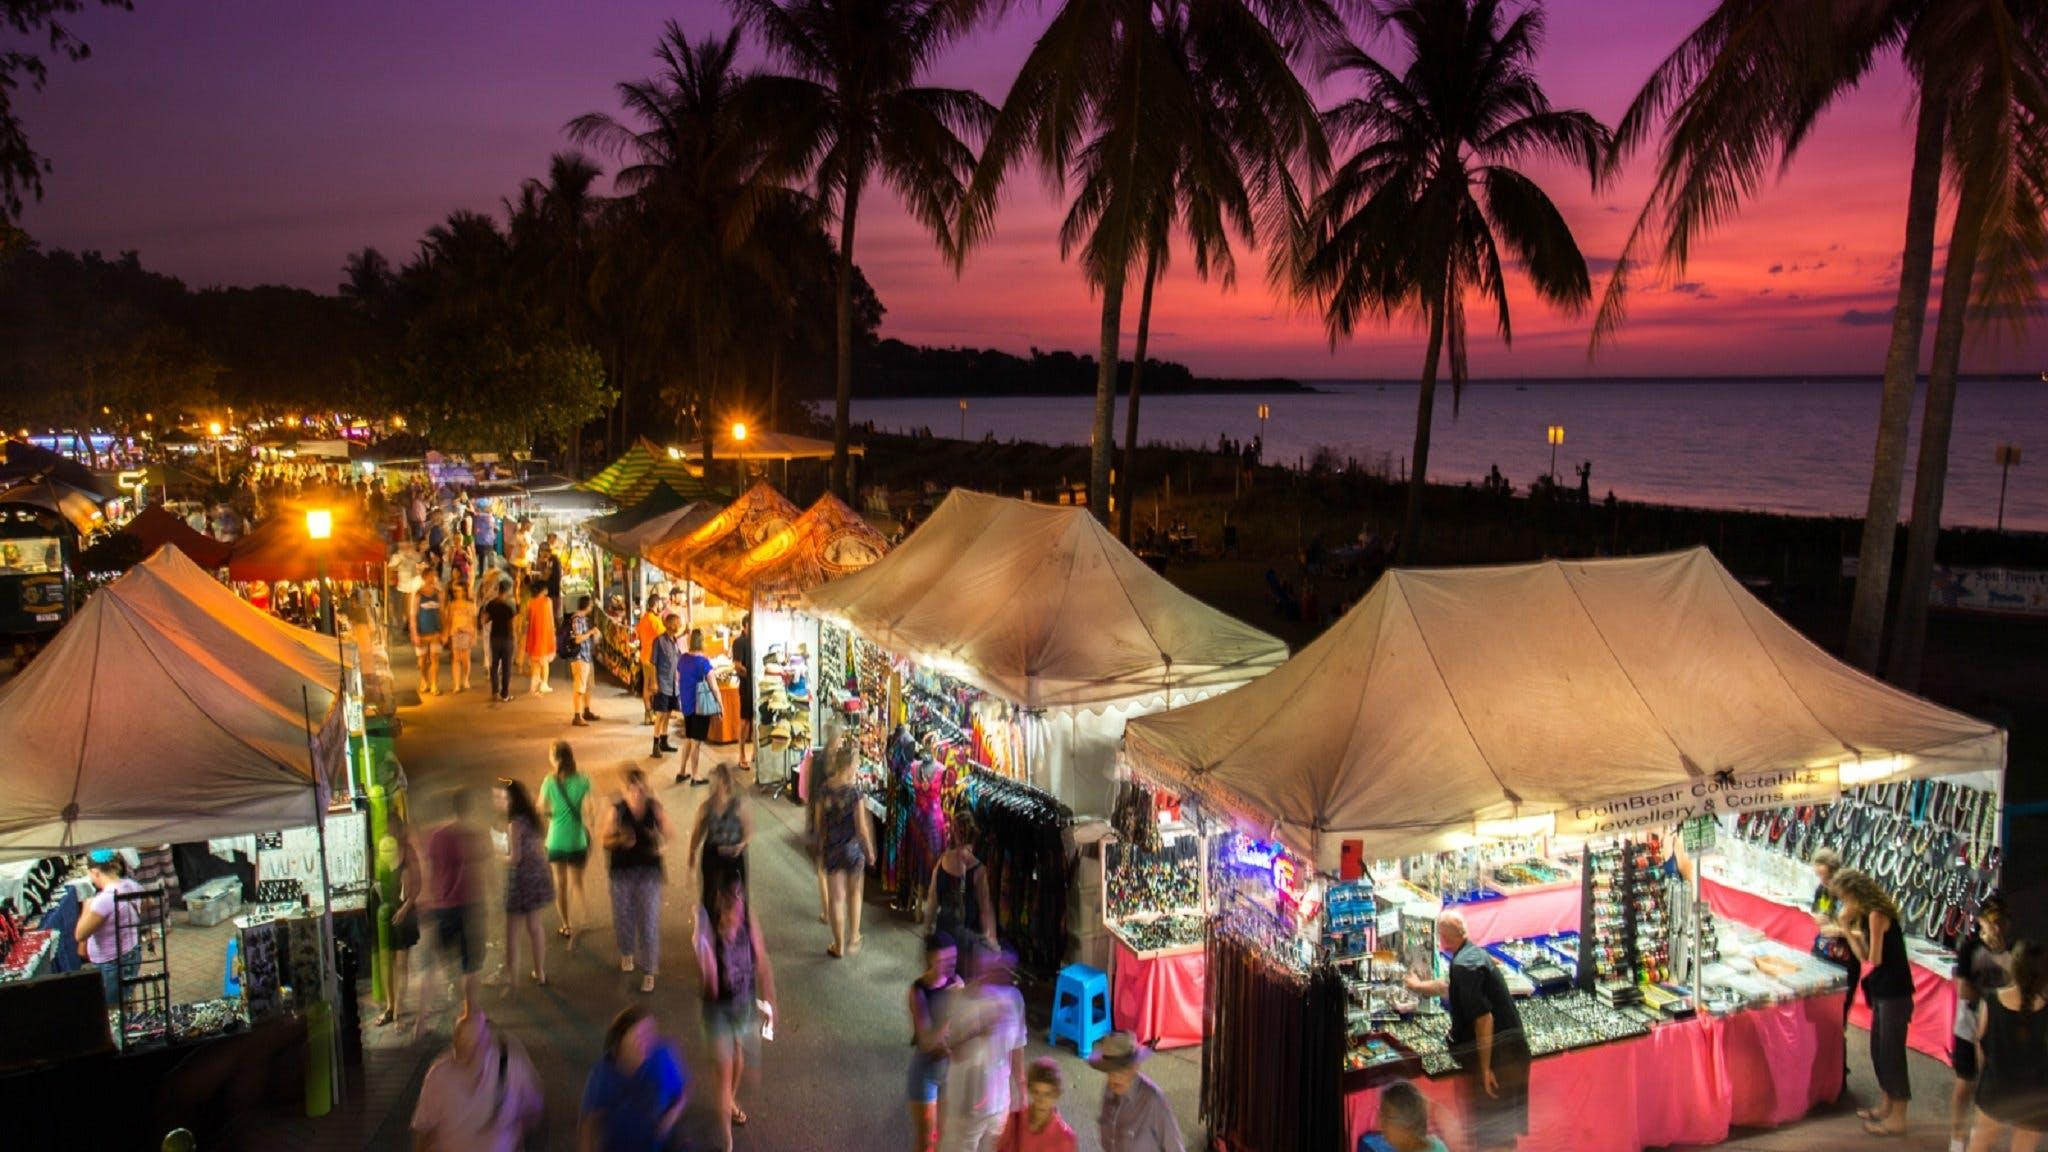 7-Day Culture and Nature in the Top End - Tripfuser